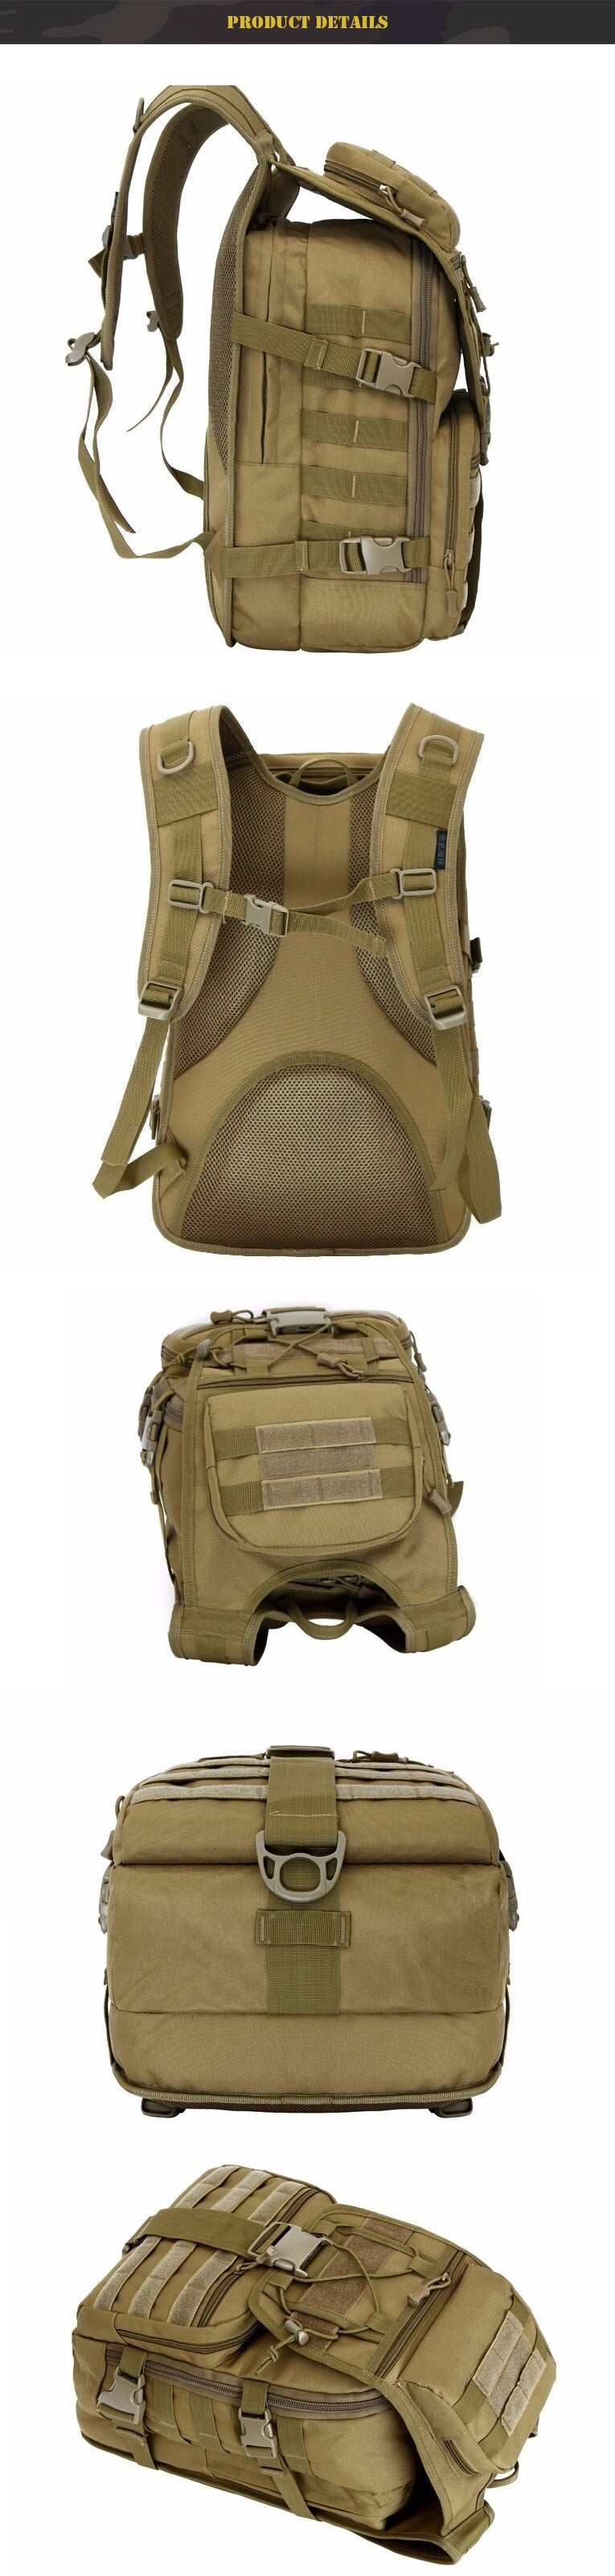 Military Tactical MOLLE Backpack For Hiking Trekking Travel - 7 Colors